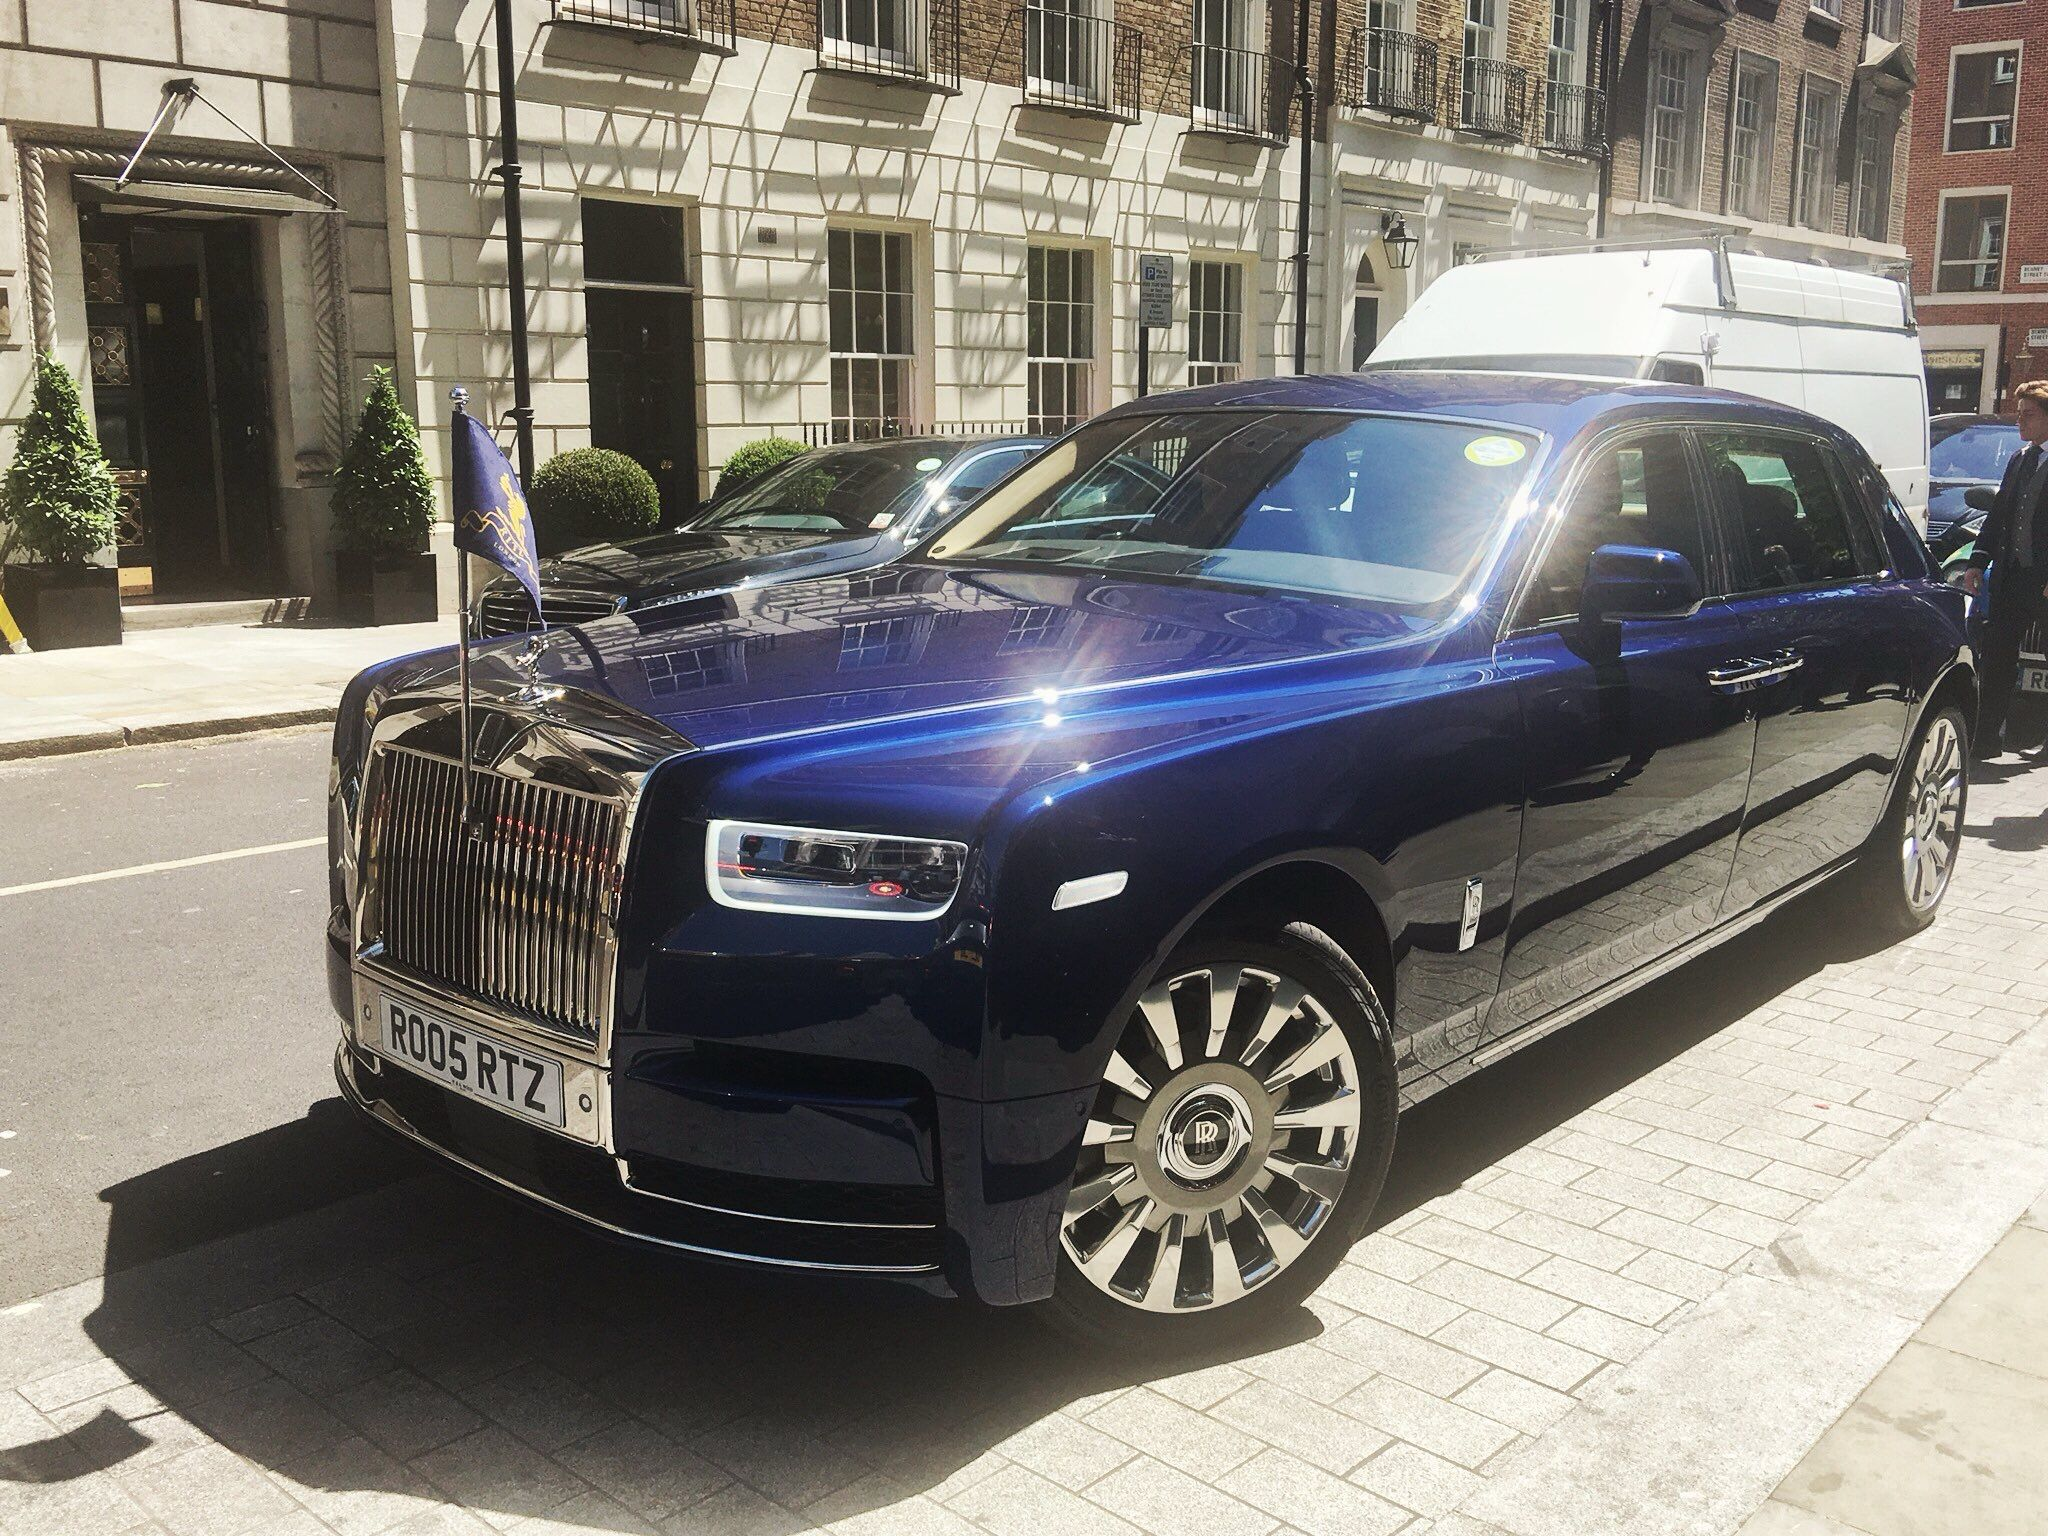 Brand New Ritz Rolls Royce 8th Generation Phantom Ewb Custom Made